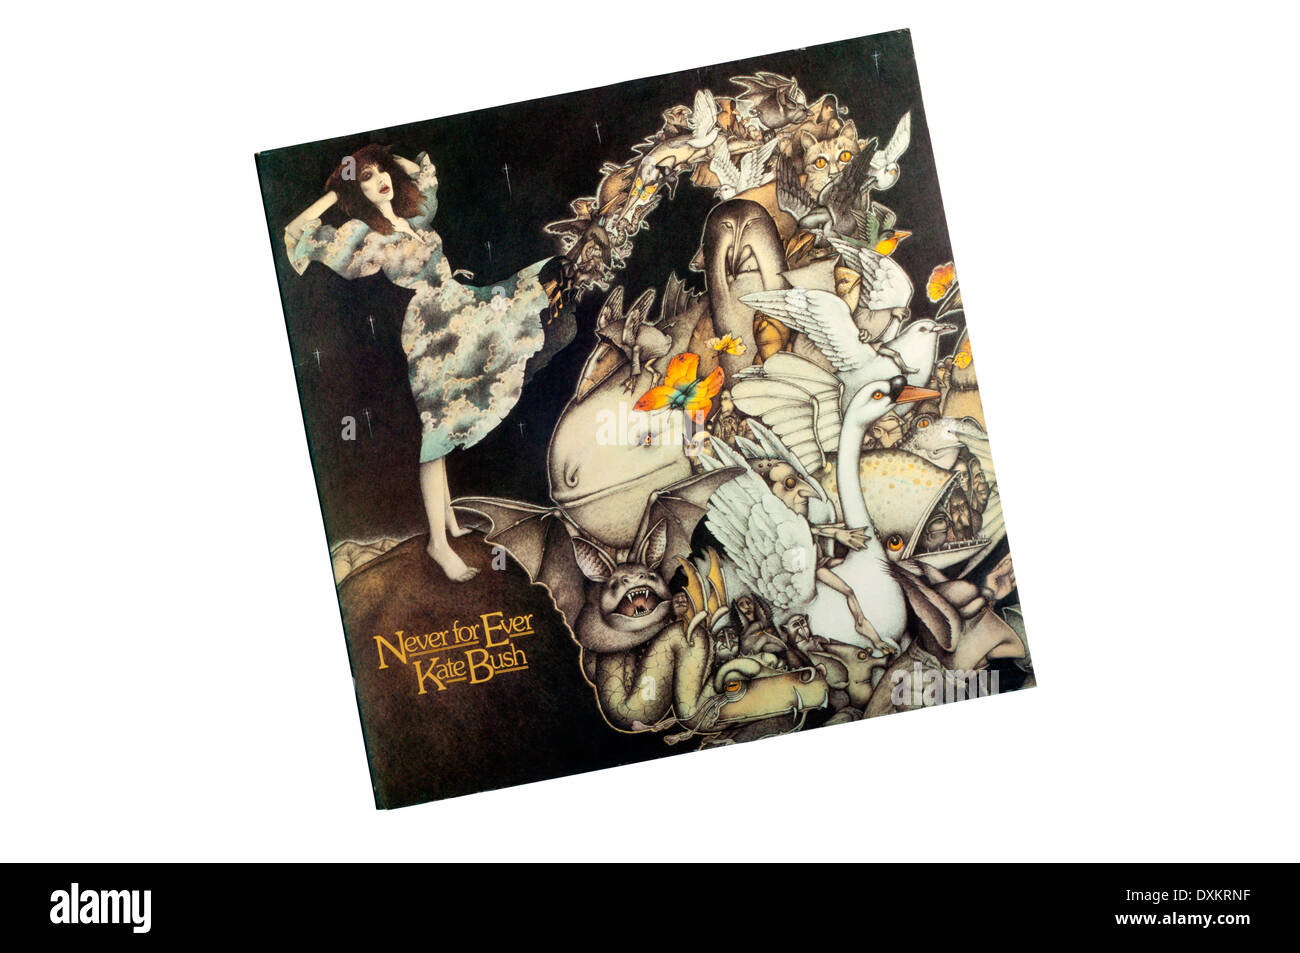 Never for Ever was the 3rd album by the English singer Kate Bush, released in 1980. - Stock Image